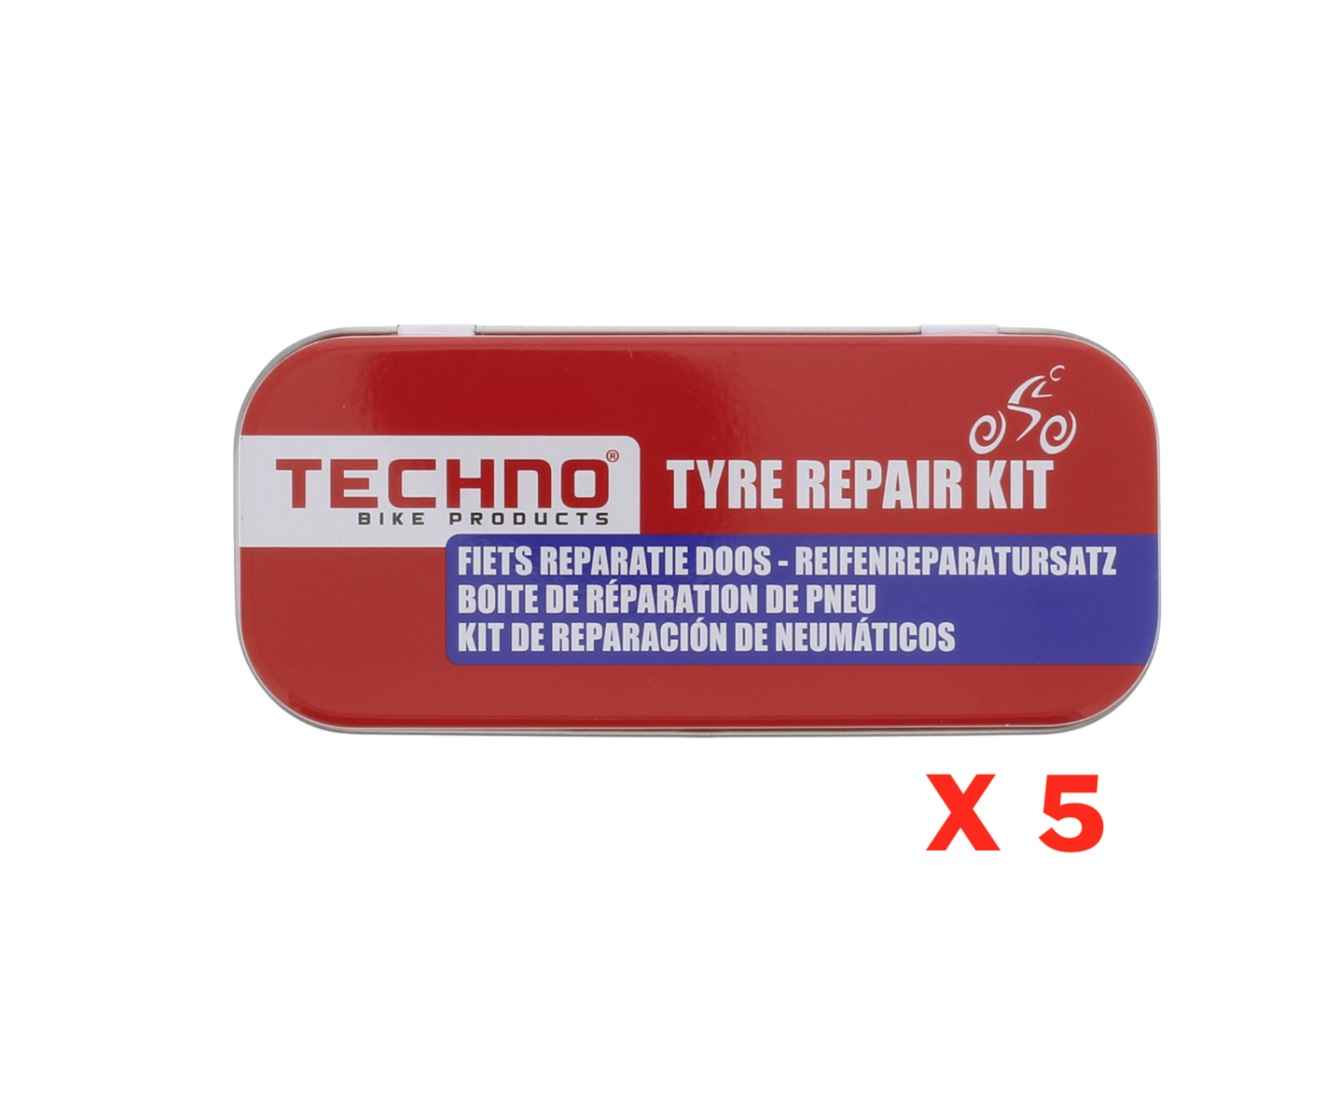 BOITE DE REPARATION DE PNEU TECHNO BIKE PRODUCTS VELO MOTO SCOOTER TYRE REPAIR KIT SET PACK 8710259011260 COMASOUND KARTEL CSK ONLINE